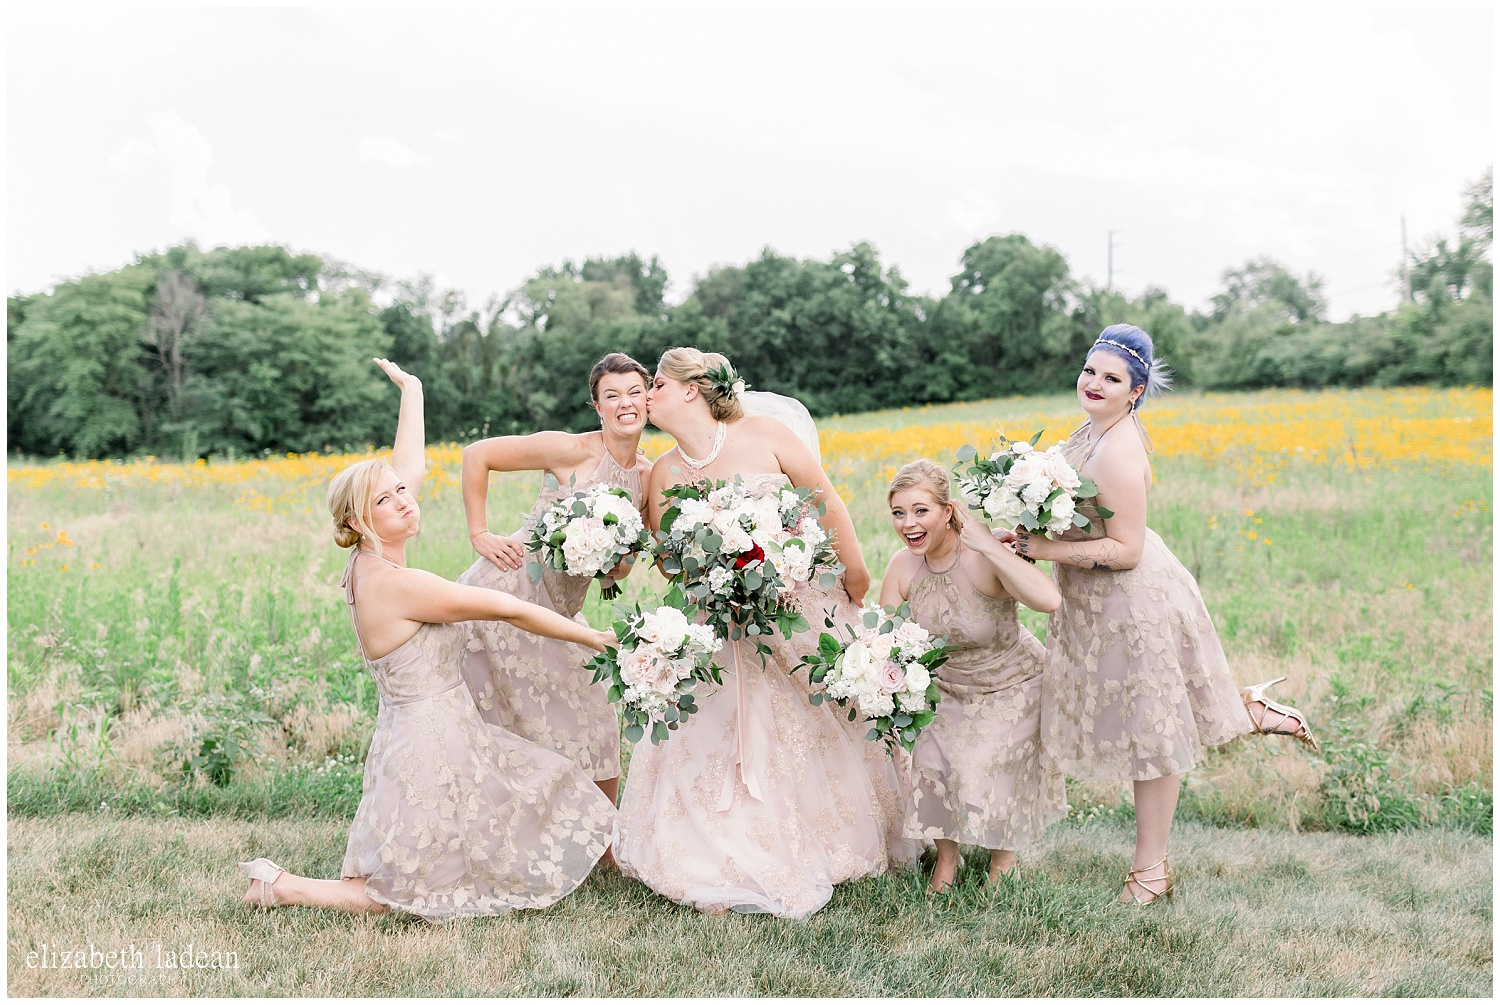 -behind-the-scenes-of-a-wedding-photographer-2018-elizabeth-ladean-photography-photo_3479.jpg